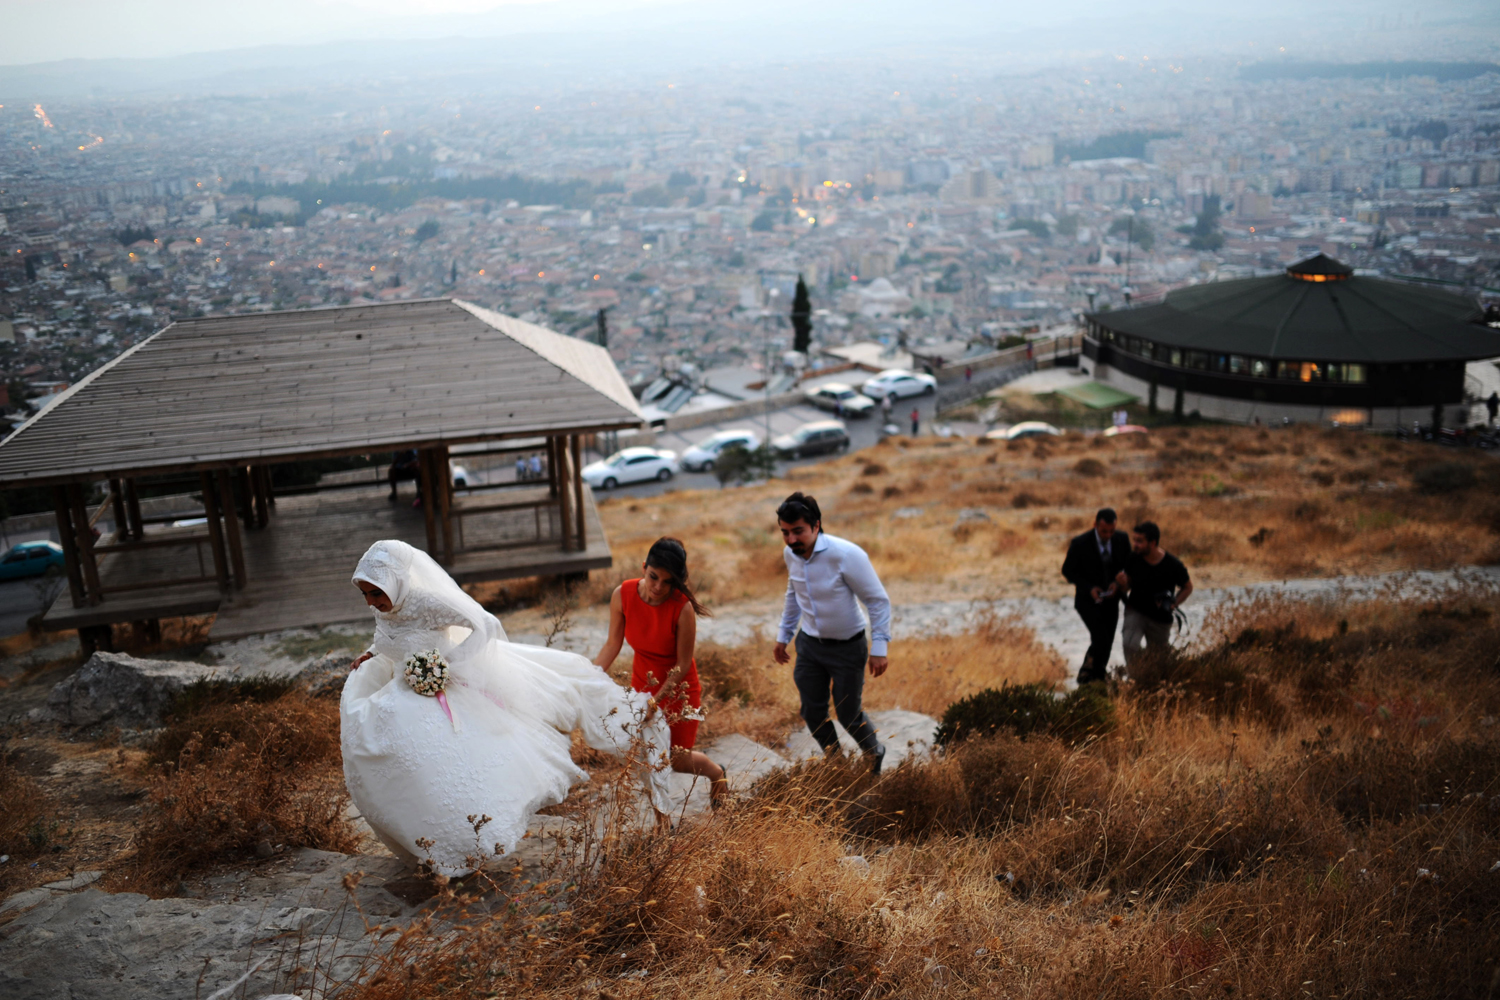 Aug. 29, 2013. A newly married couple walks up a hill with a view of the city of Antakya, Turkey.